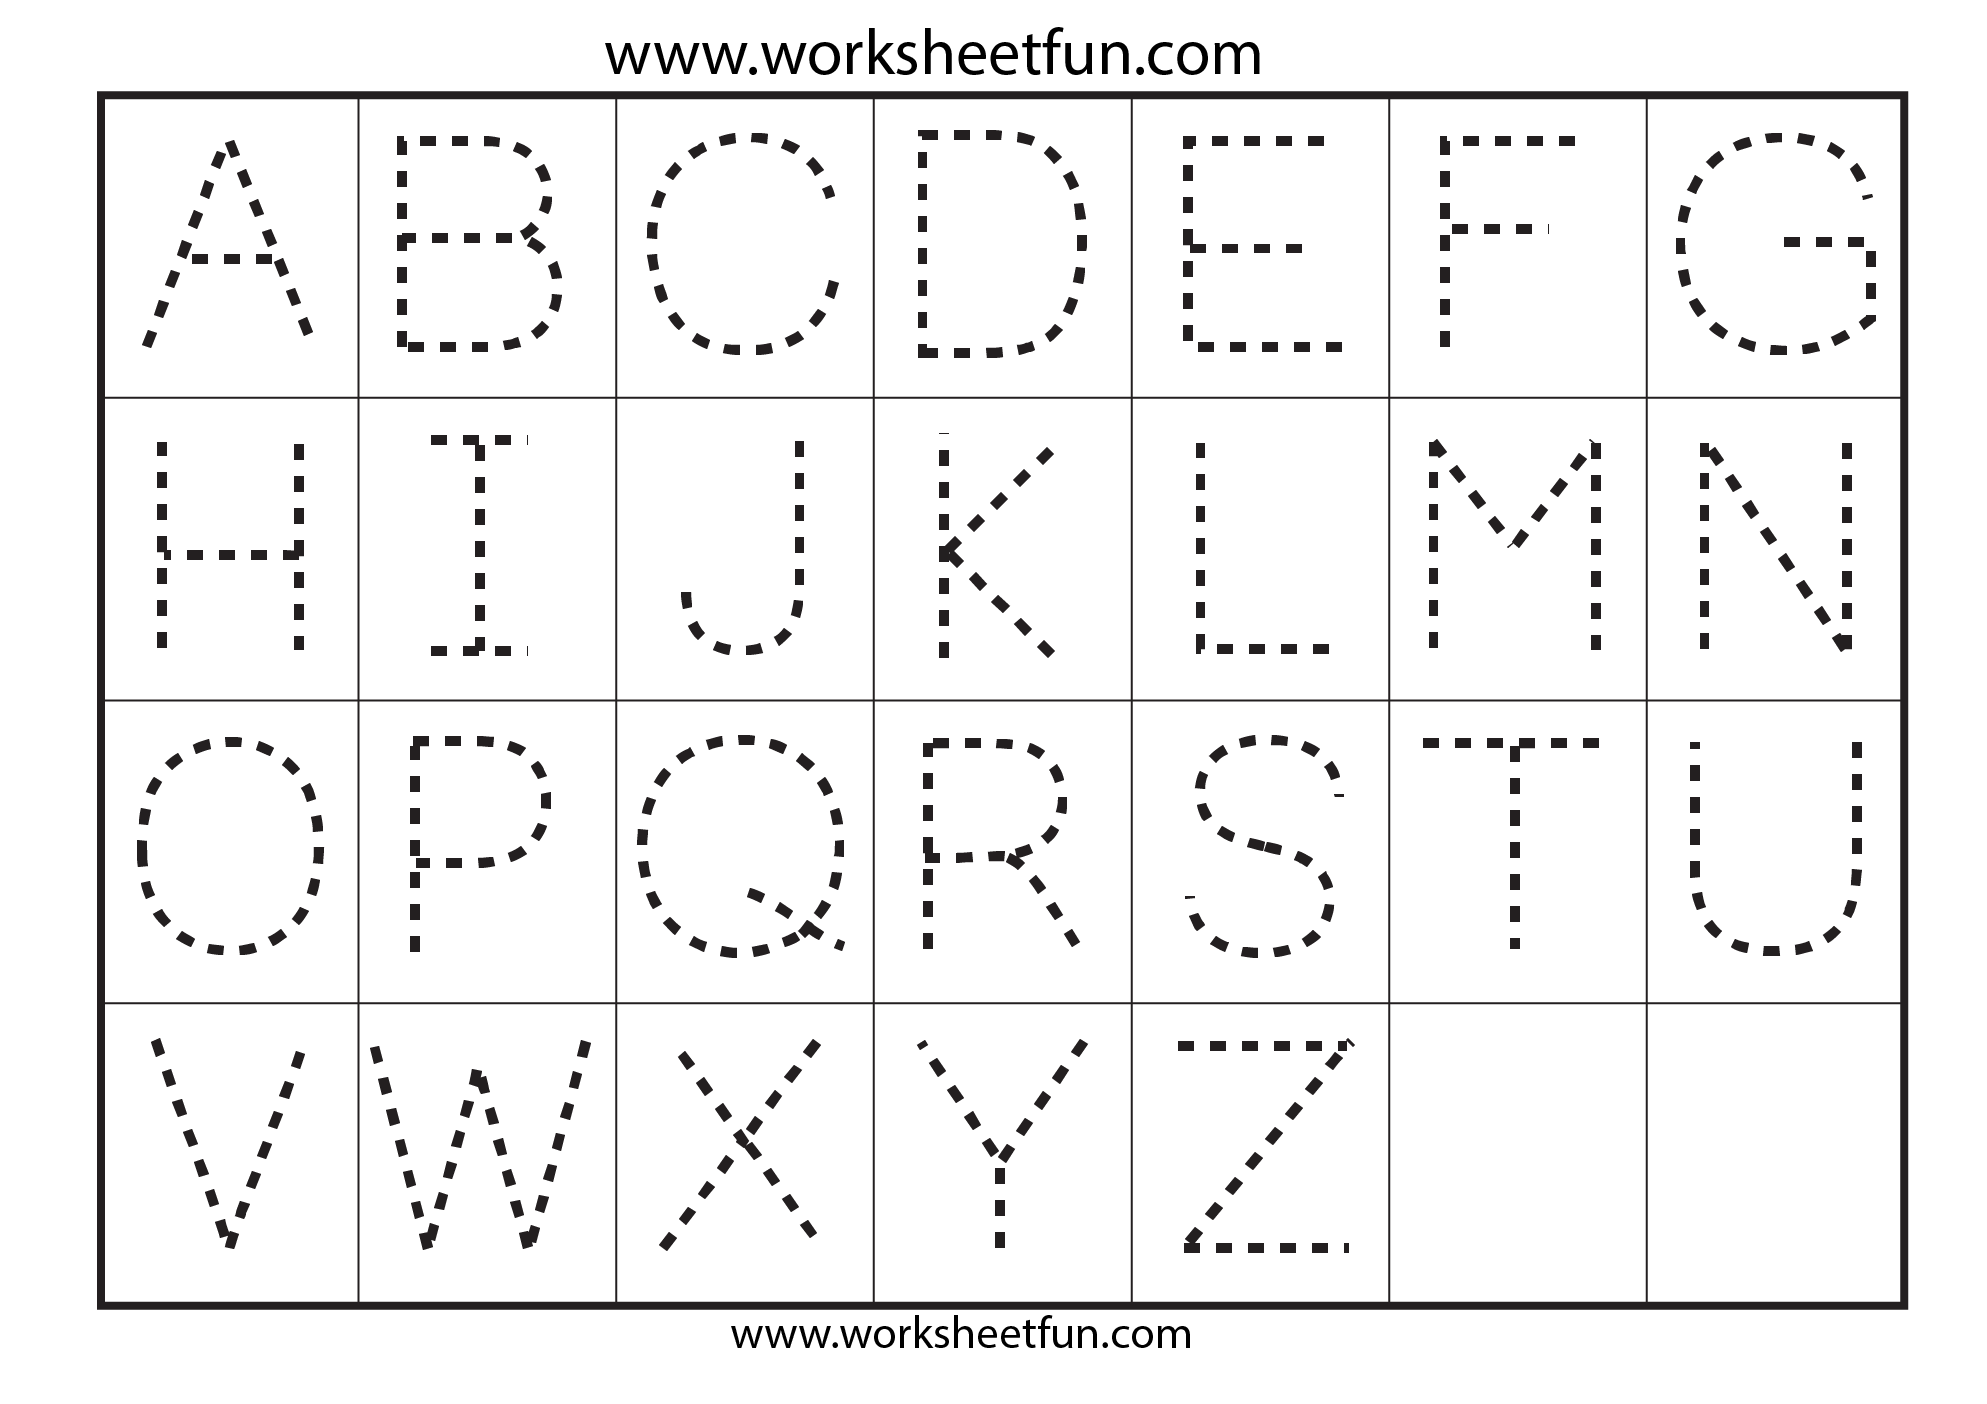 Worksheets Kindergarten Alphabet Tracing Worksheets preschool worksheets alphabet tracing letter a art pinterest a